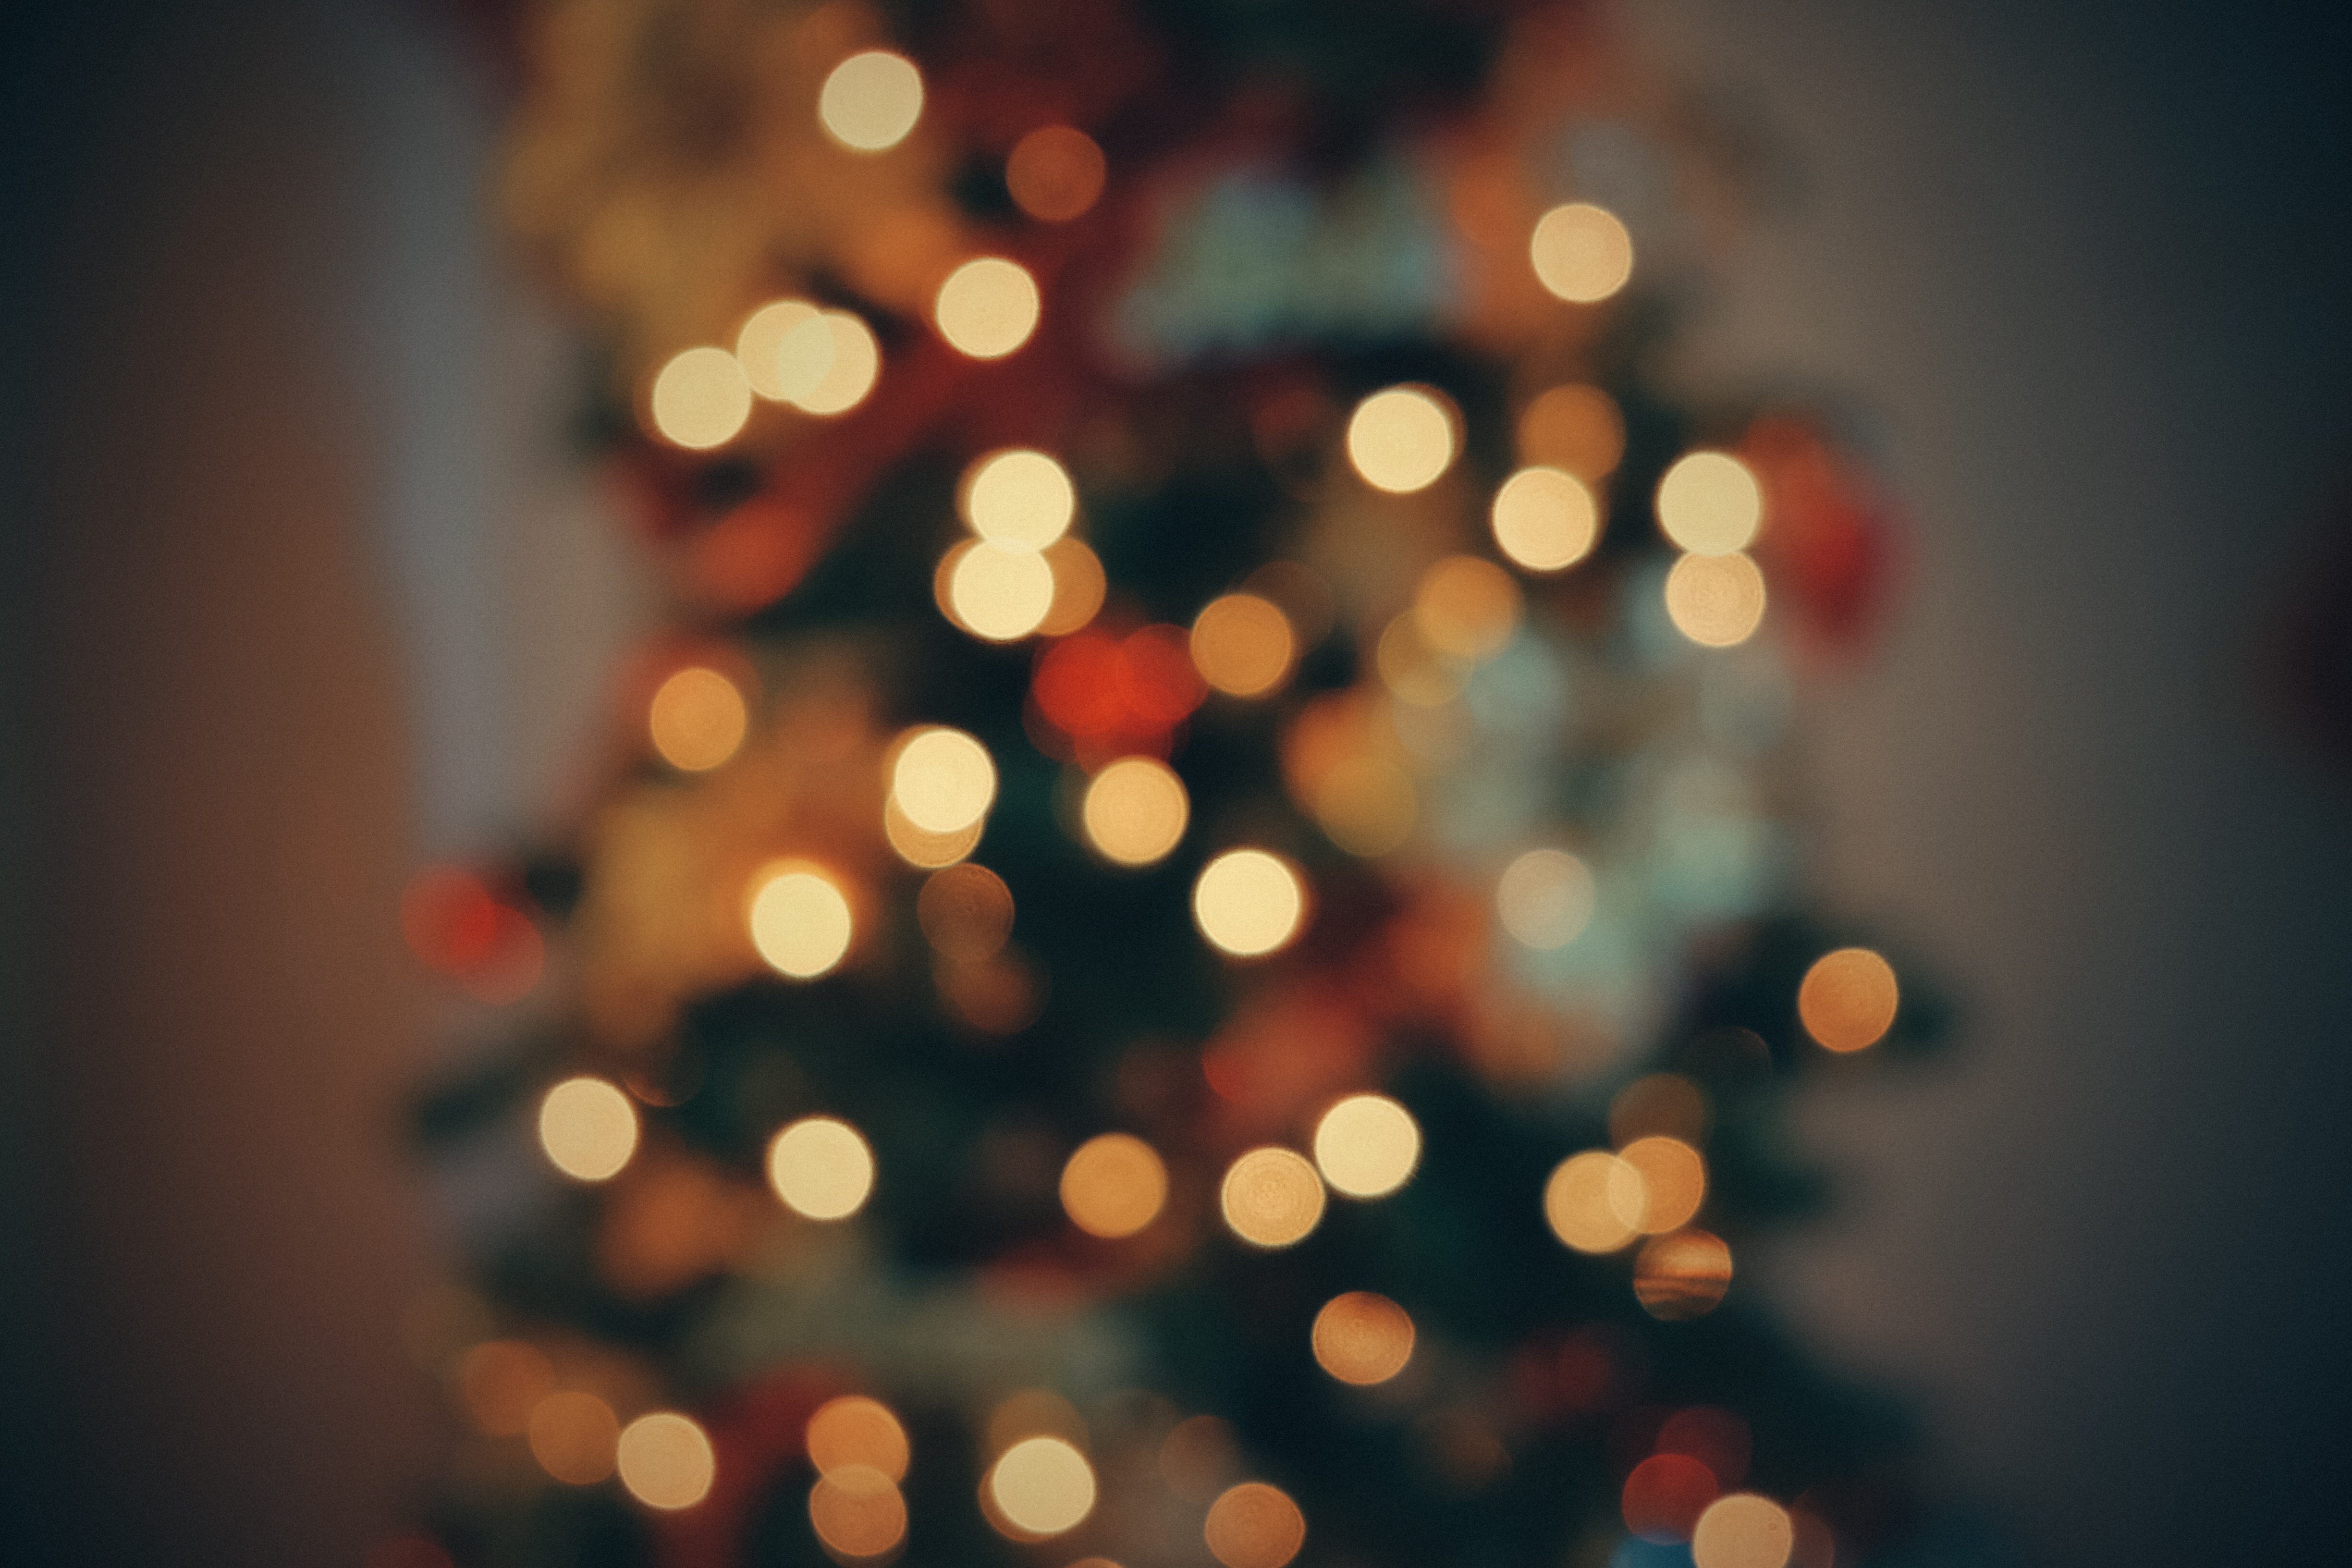 Bokeh tree light and christmas tree hd photo by jad limcaco